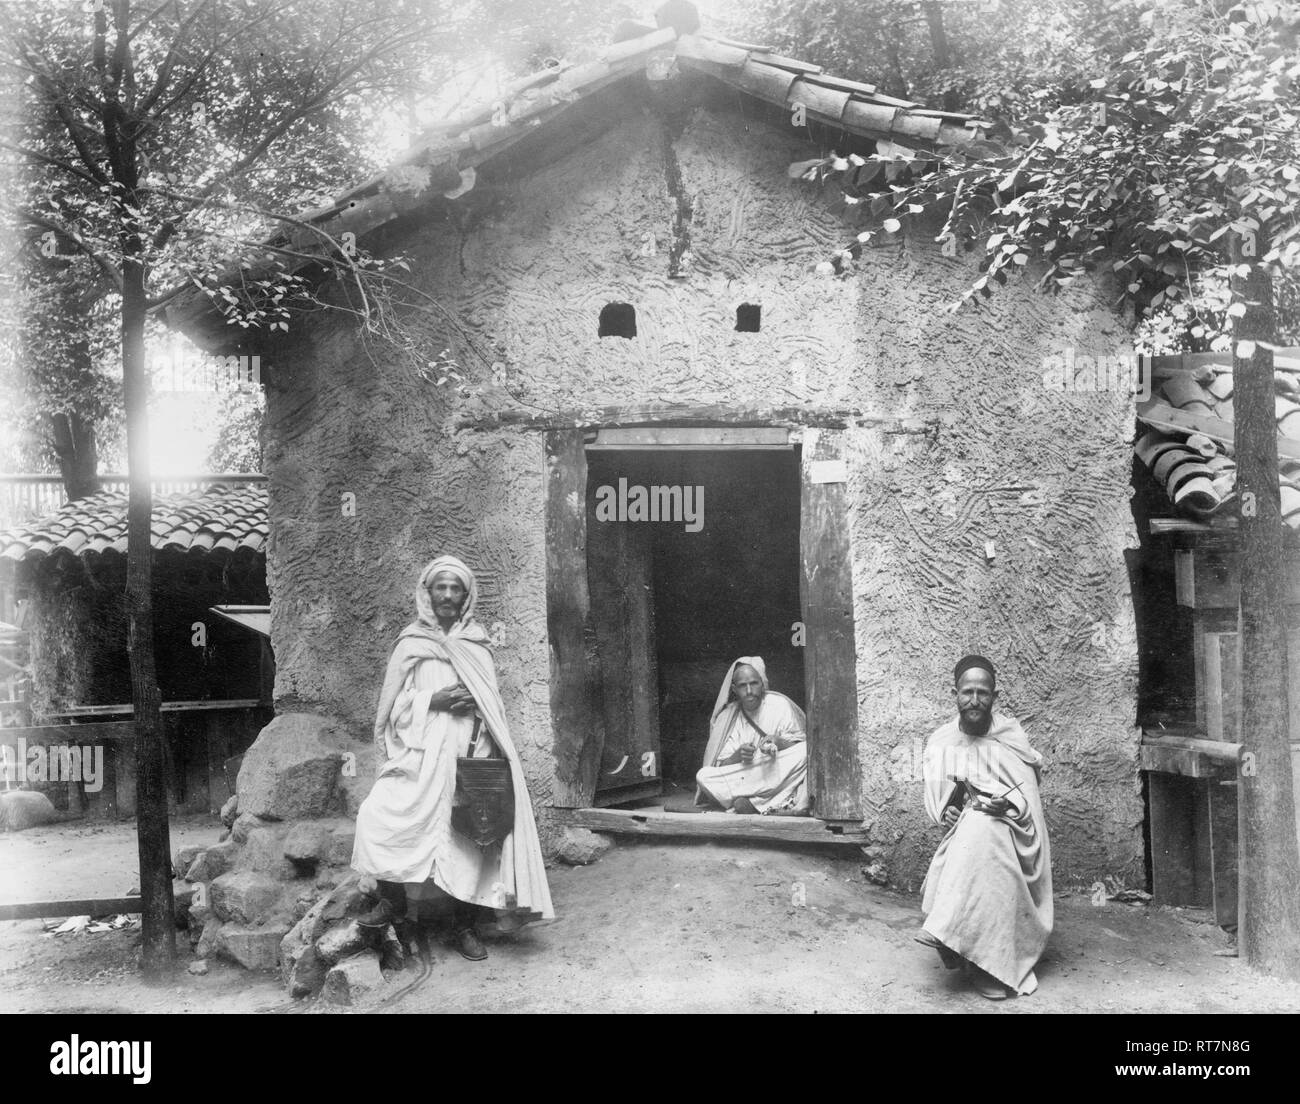 Three Arab men sitting in front of Kabyle house, Paris Exposition, 1889 - Stock Image